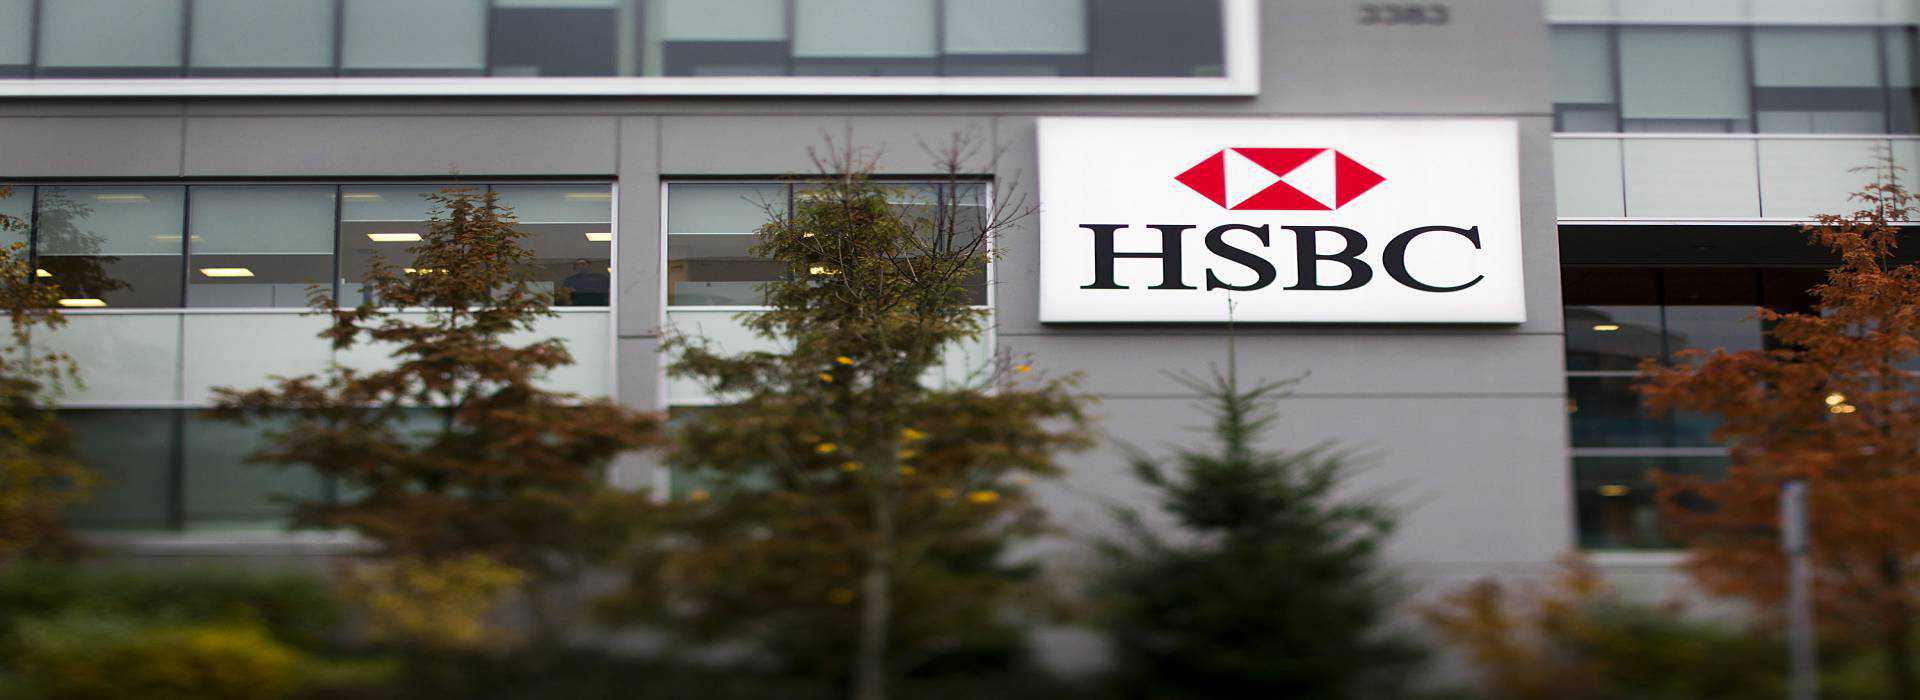 HSBC USA Customer Service Number, Head Office Address